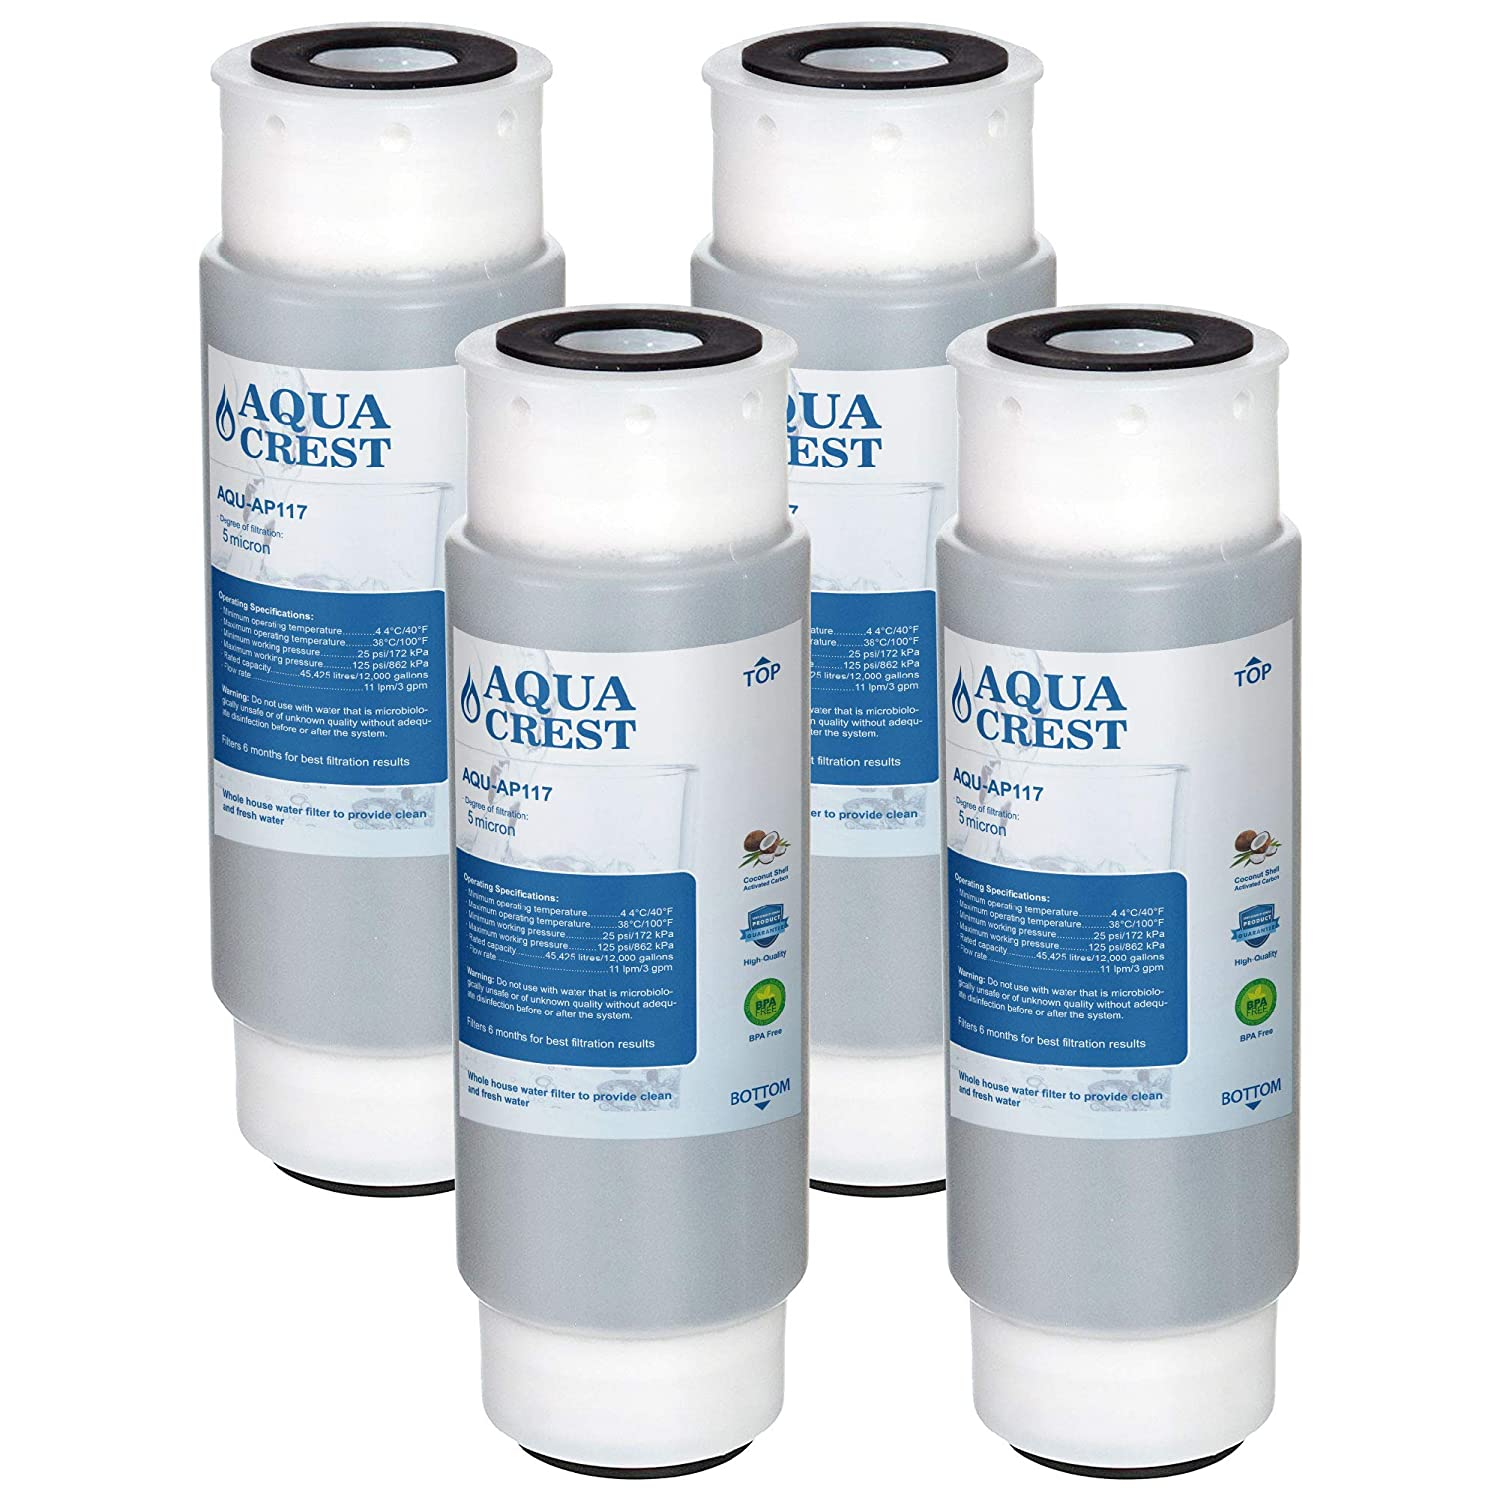 AQUACREST AP117 Whole House Water Filter, Compatible with 3M Aqua-Pure AP117, Whirlpool WHKF-GAC (Pack of 4)